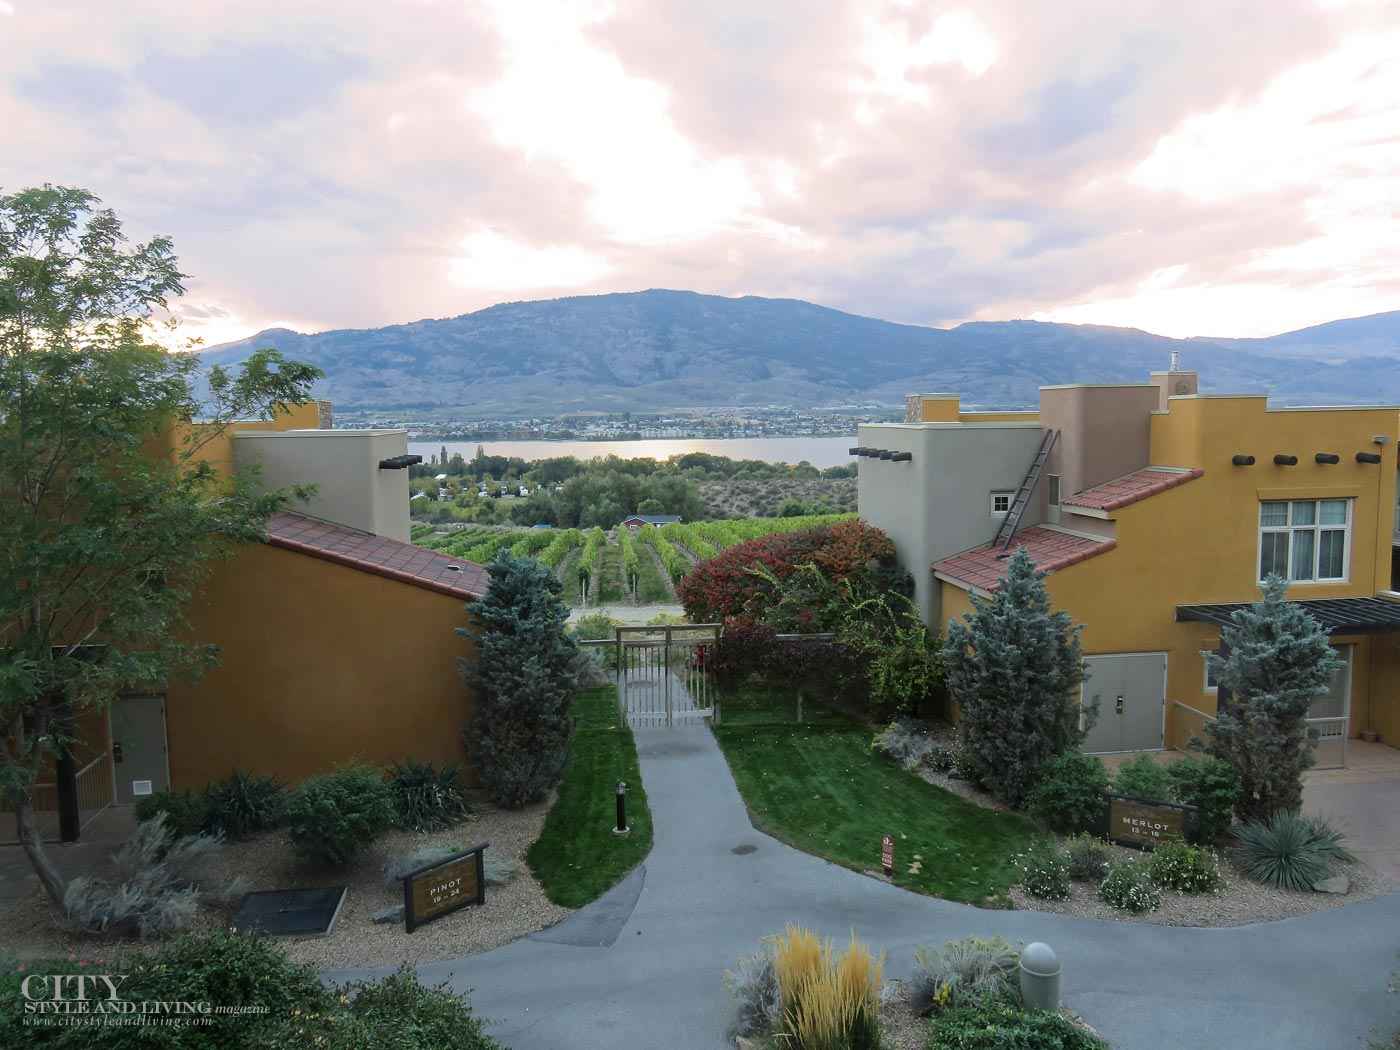 City STyle and Living MAgazine Spirit Ridge Resort at sunset in Osoyoos